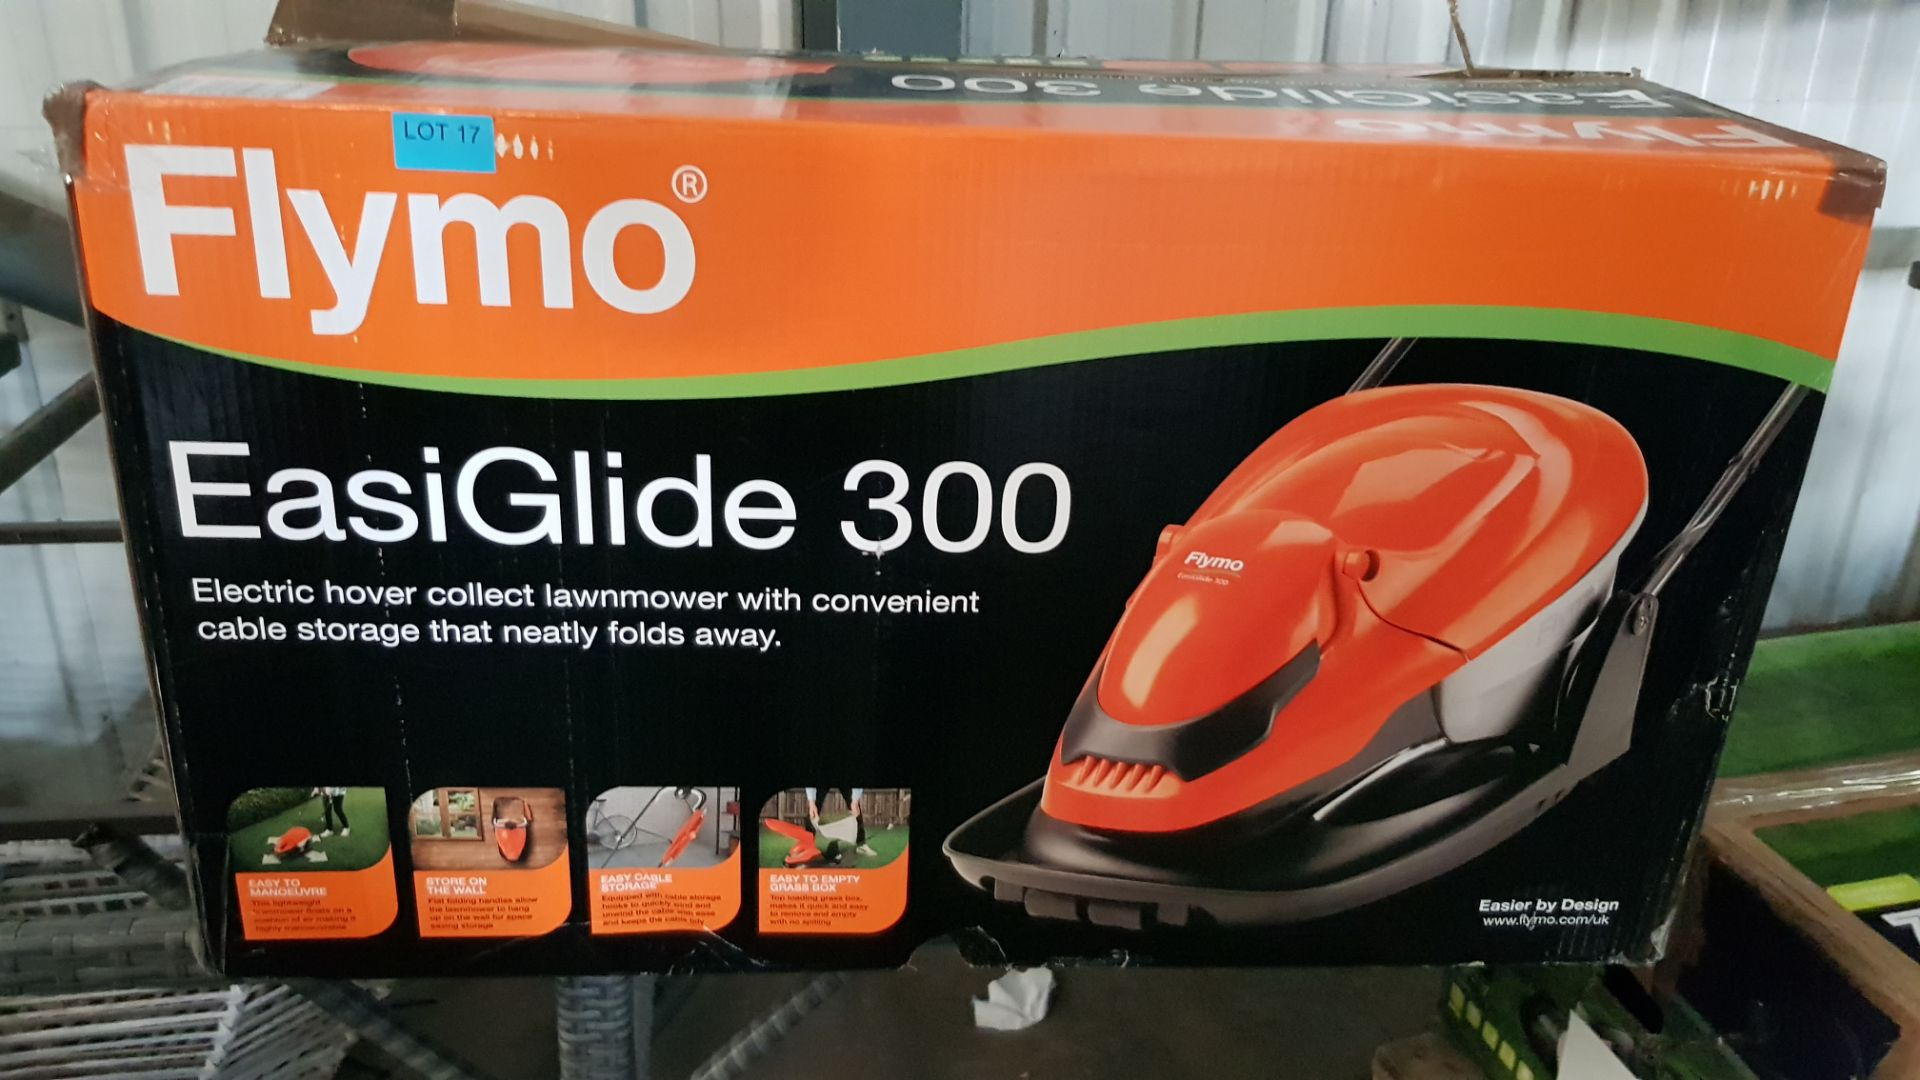 (P9) 1x Flymo Easiglide 300 RRP £99. Electric Hover Collect Lawnmower. - Image 3 of 3